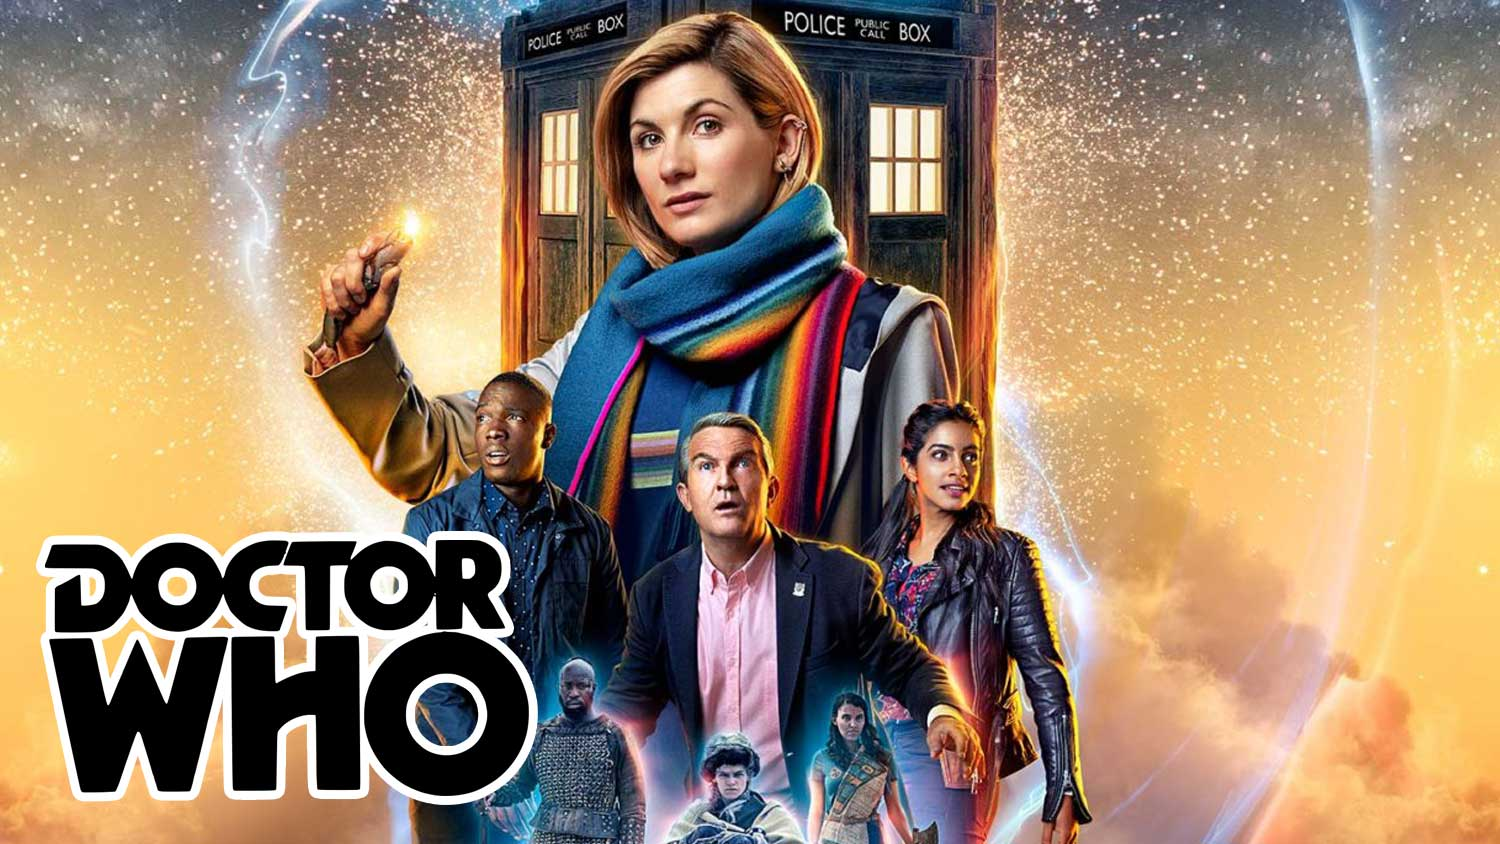 New 'Doctor Who' Season Wages War on Plastic Waste